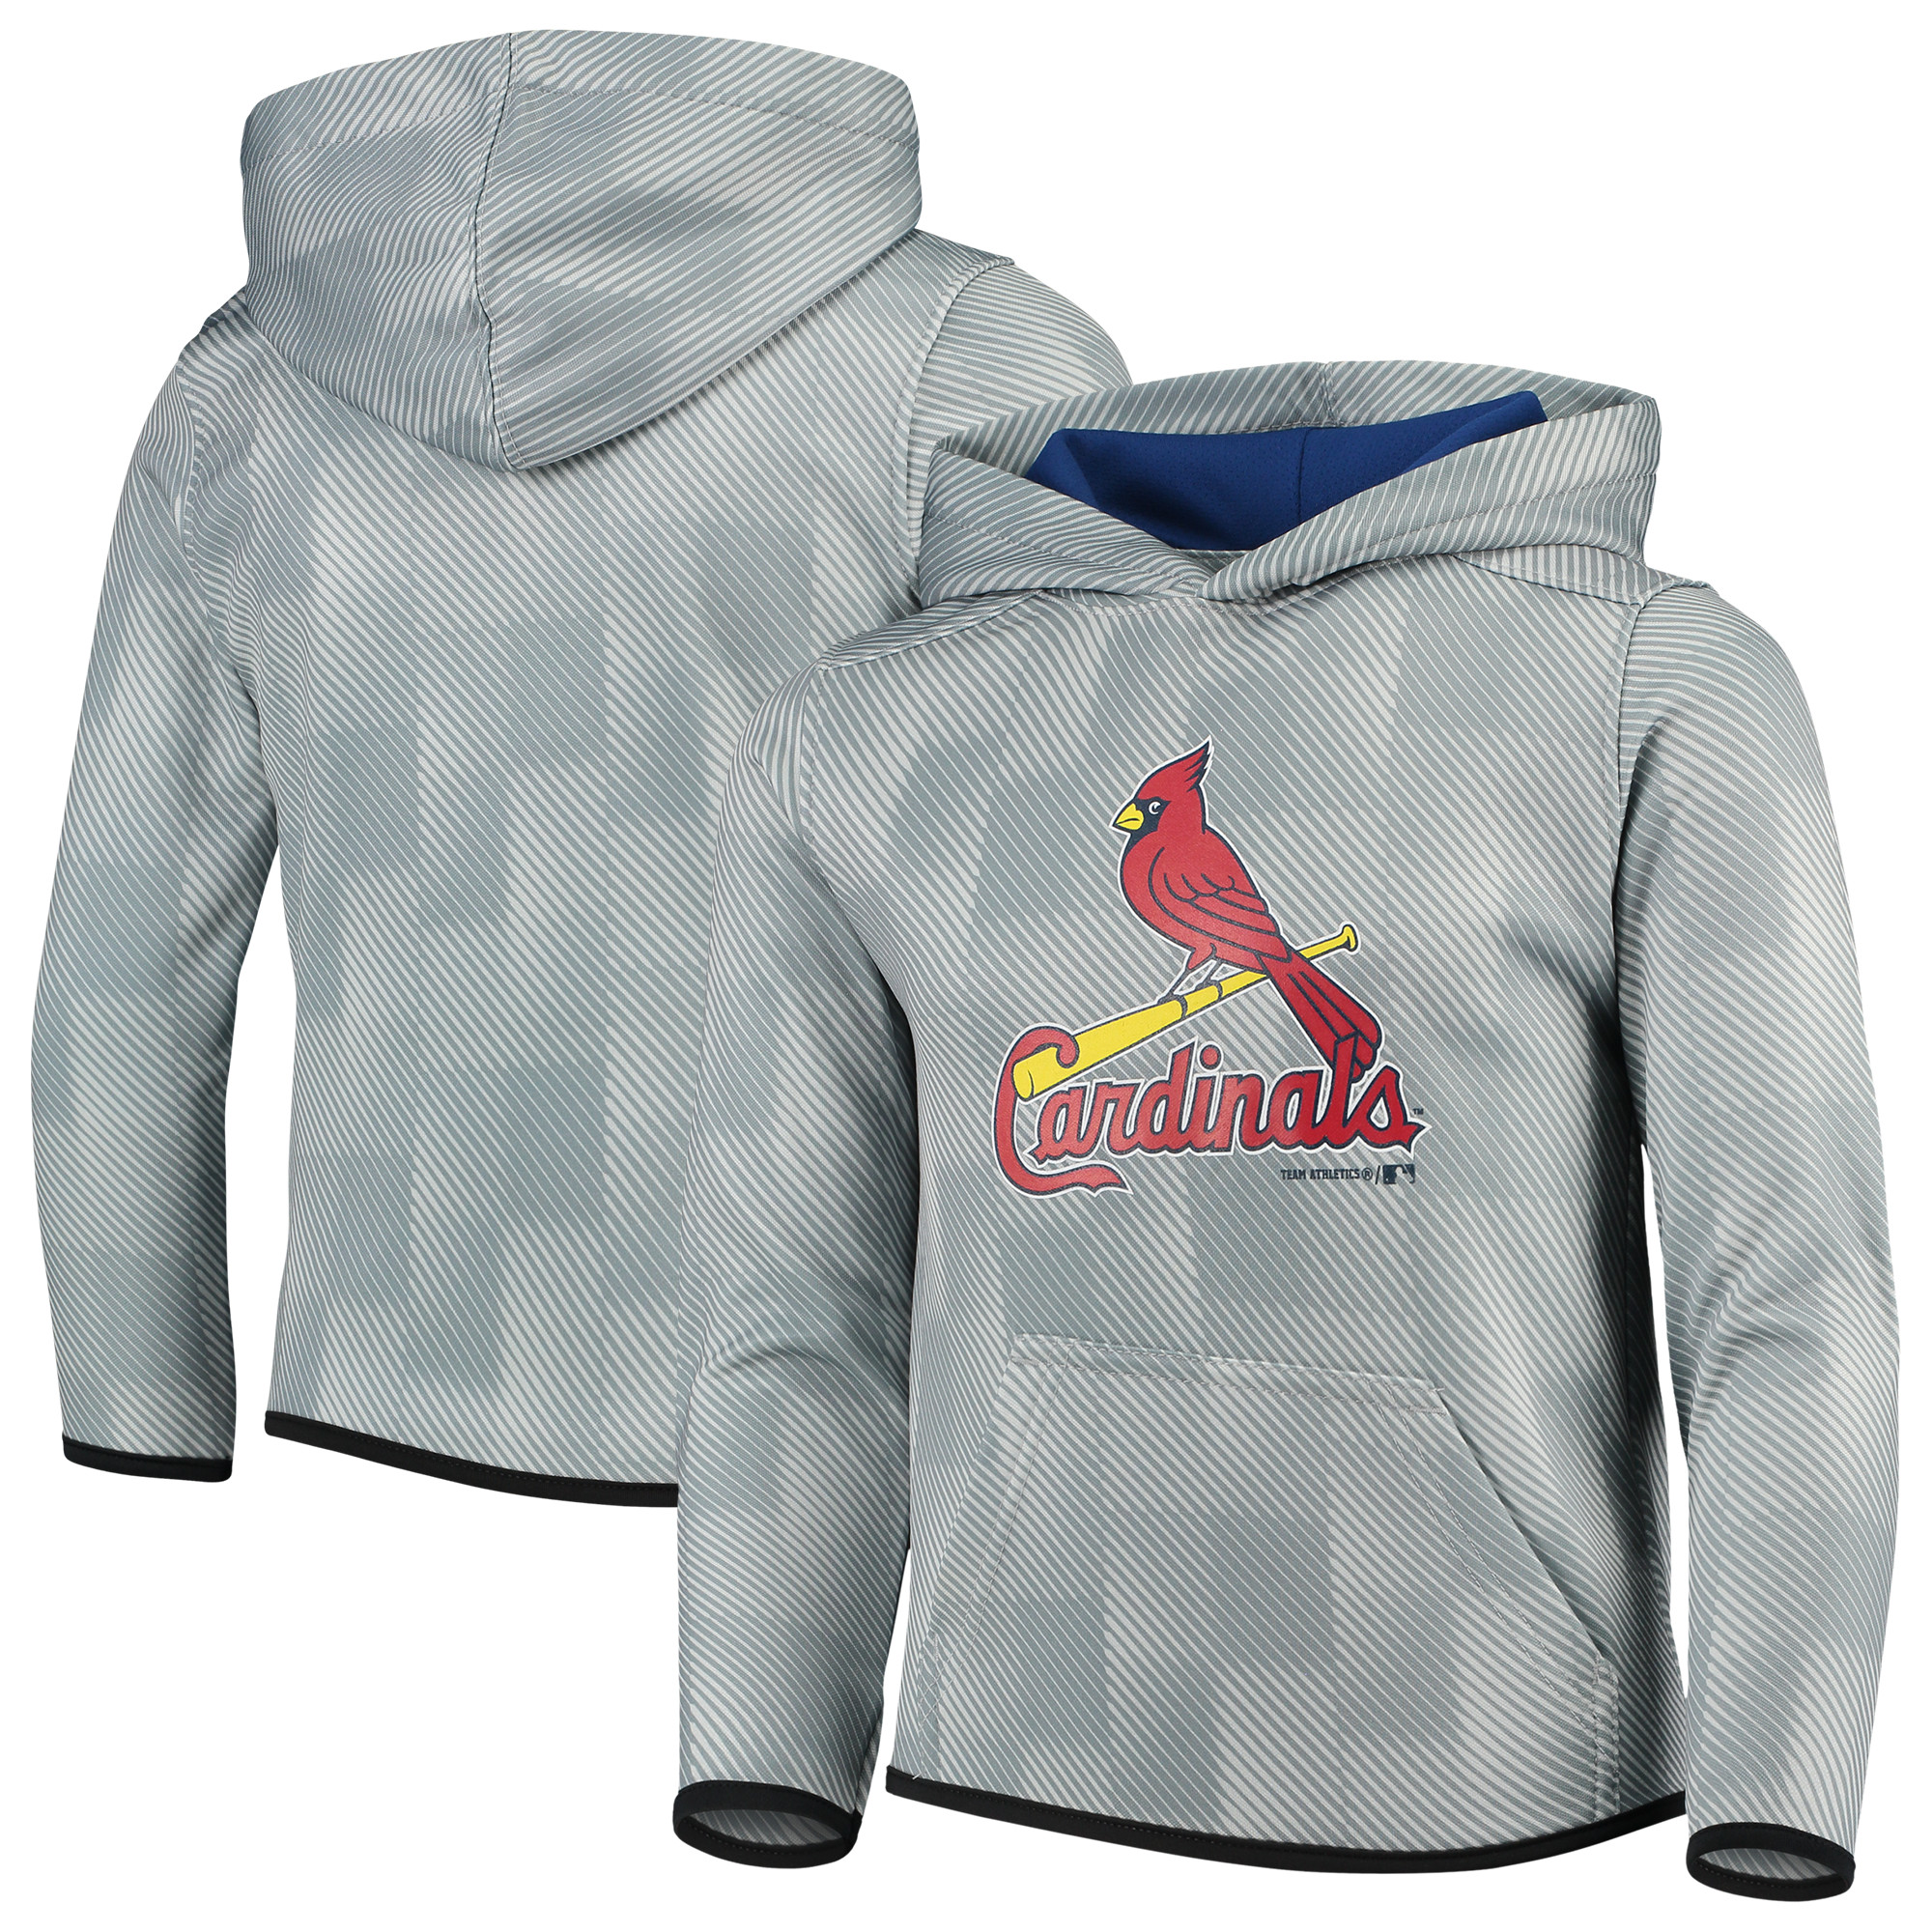 St. Louis Cardinals Youth Polyester Fleece Sweatshirt - Gray